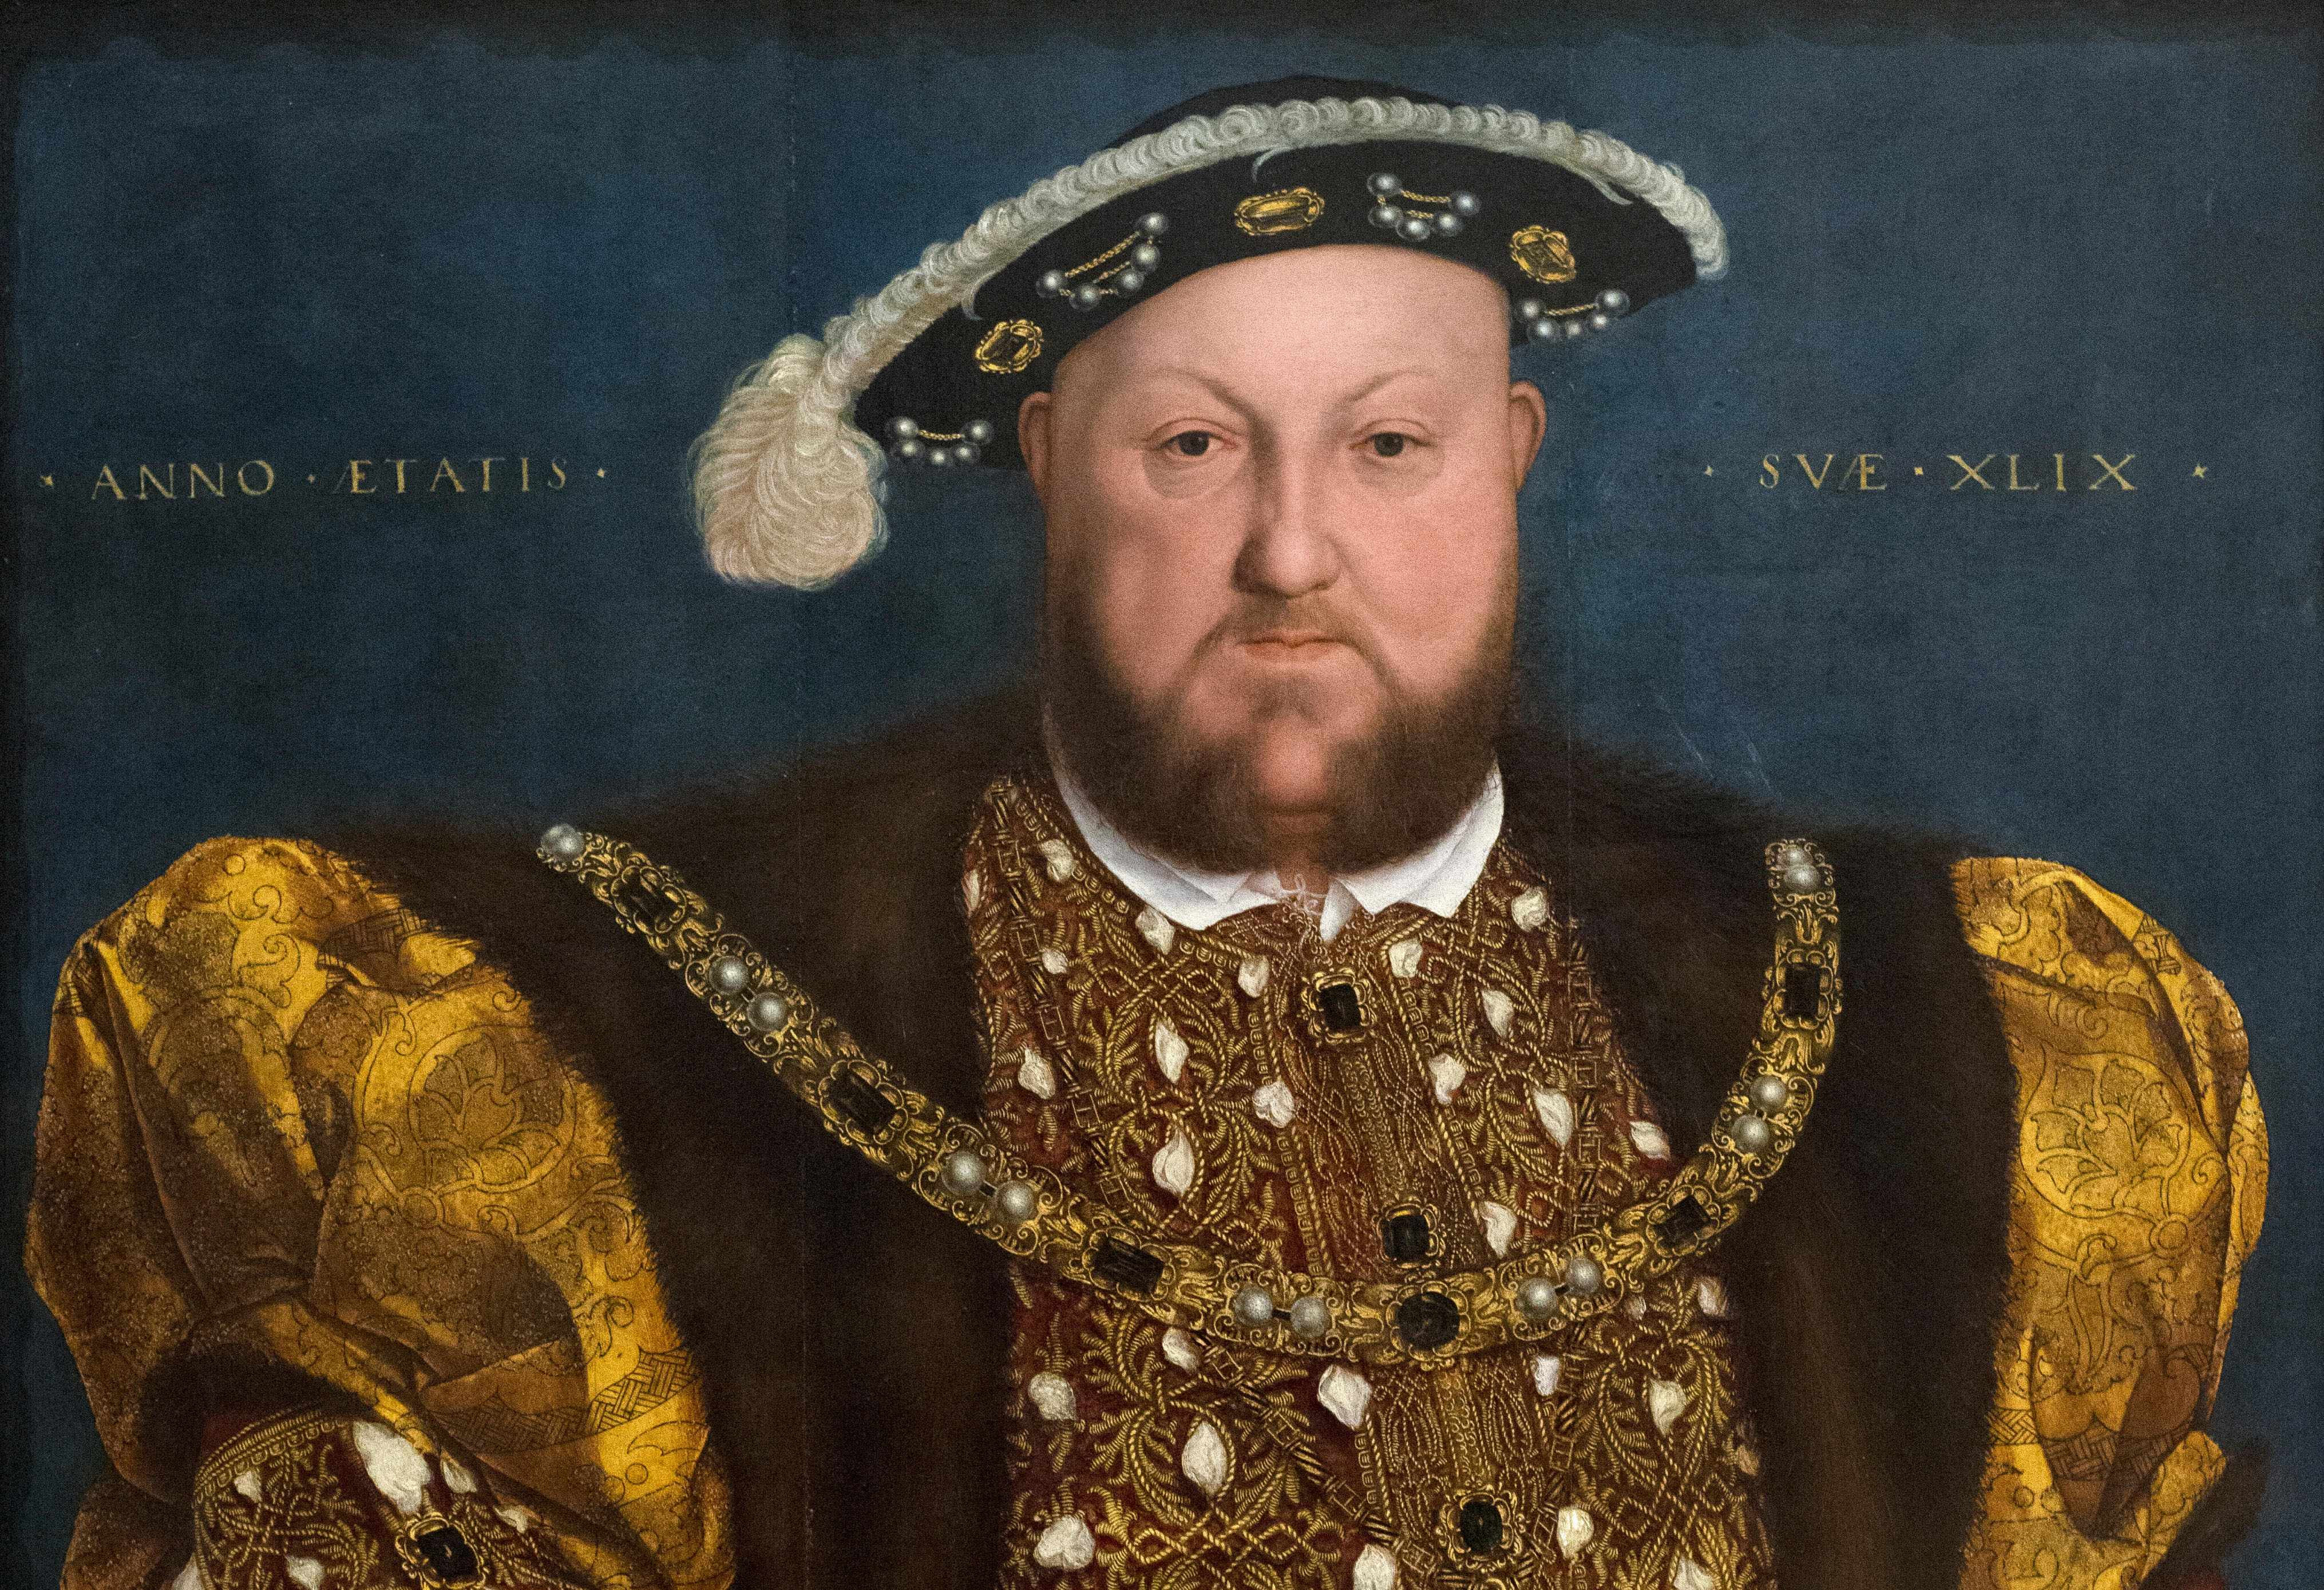 Seeking to remove opponents who questioned his right to be head of church and state, Henry VIII was ruthless in his pursuit of those he deemed traitors. (Image by Alamy)